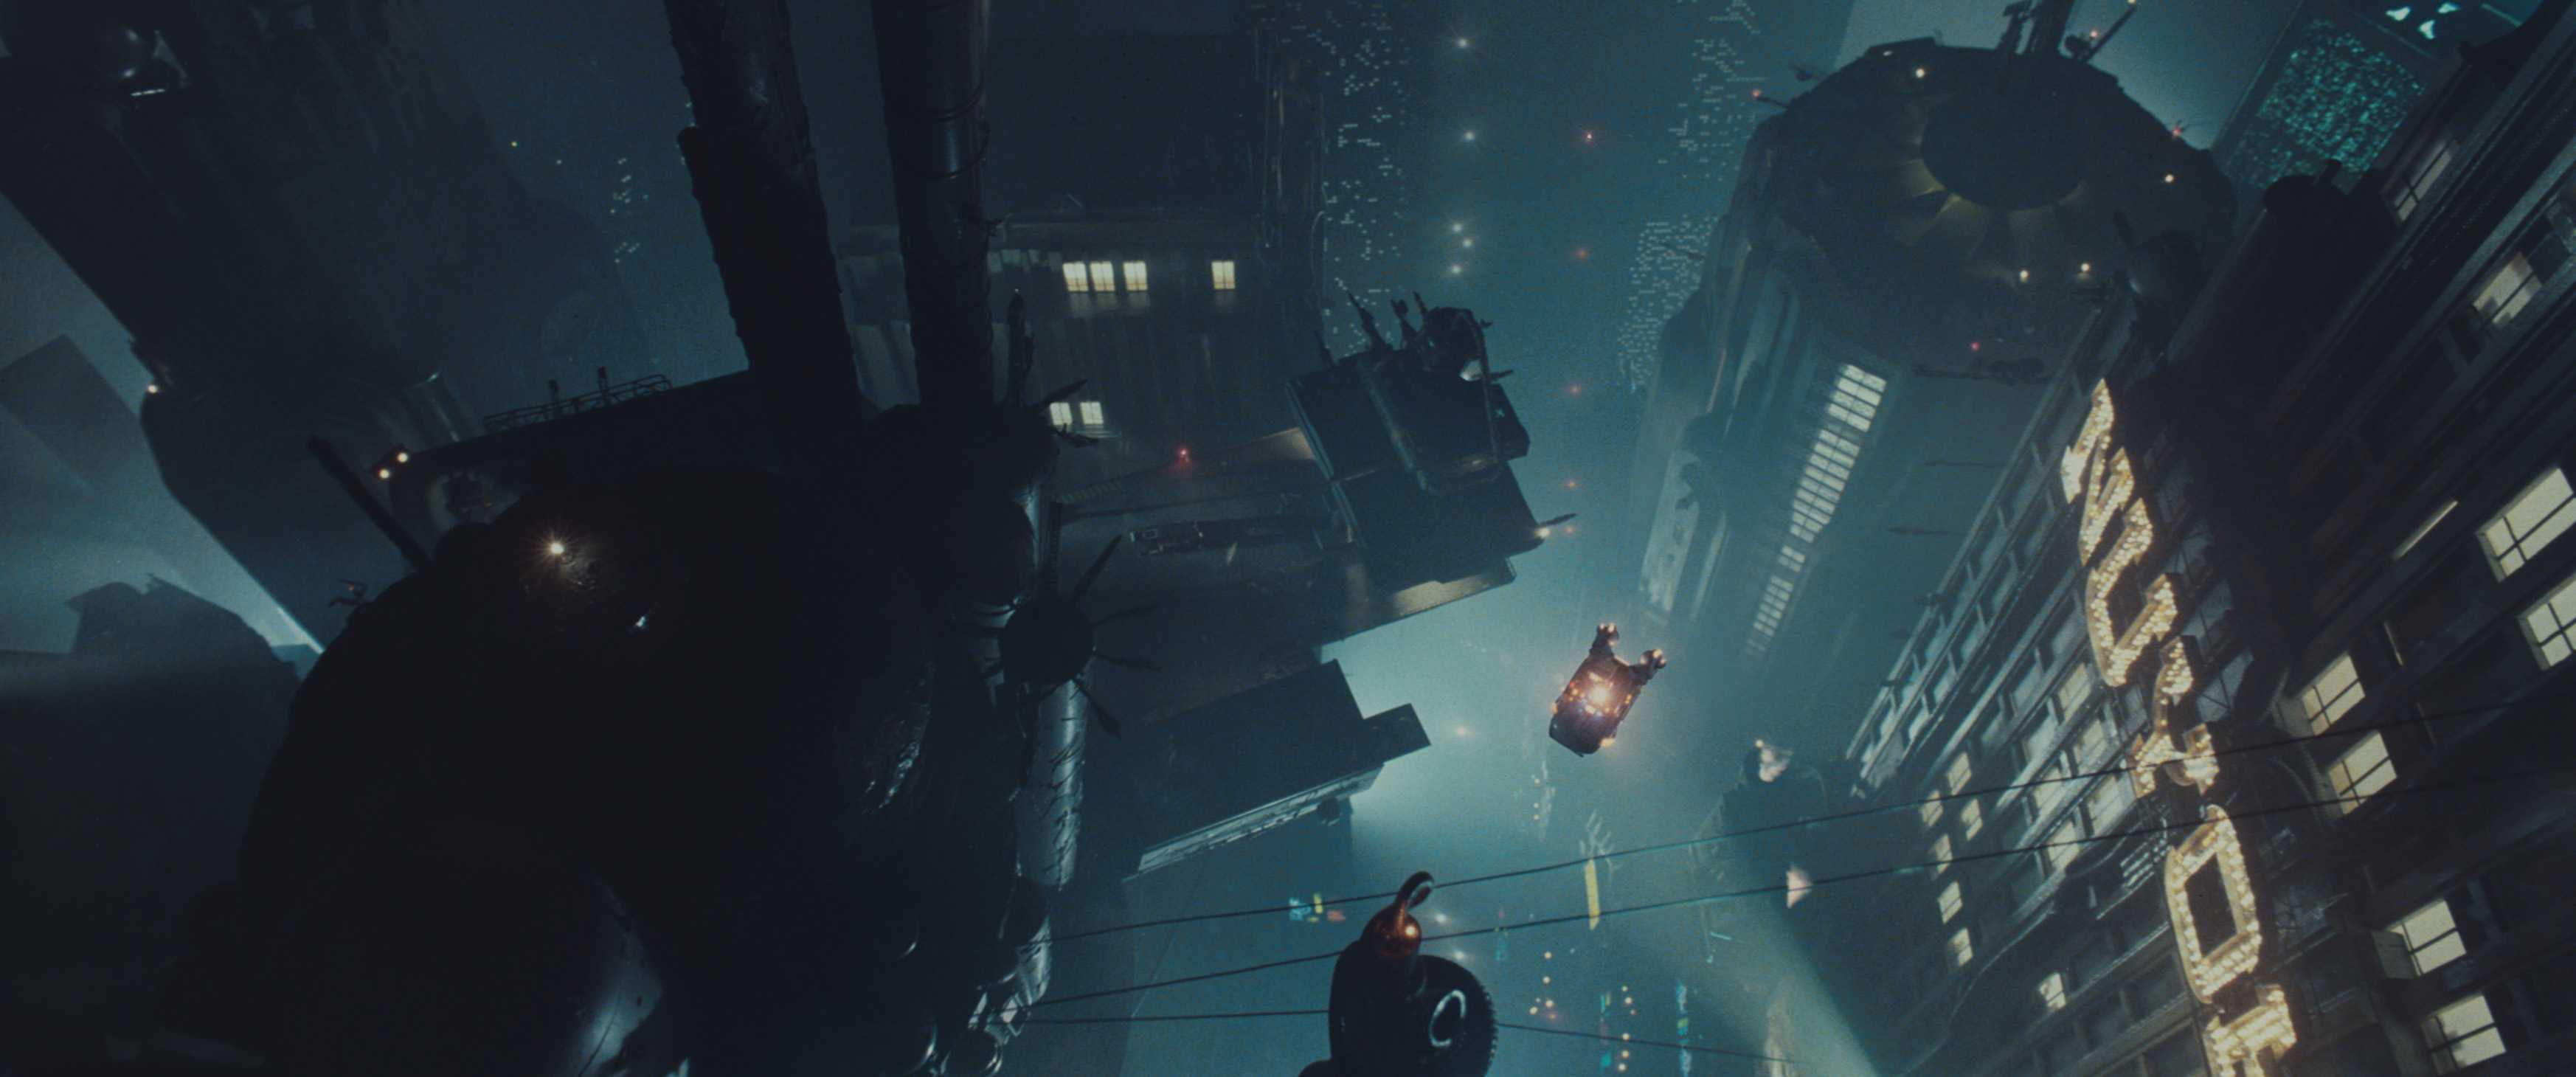 Blade Runner 16200 Hd Wallpapers in Movies   Imagescicom 3492x1460